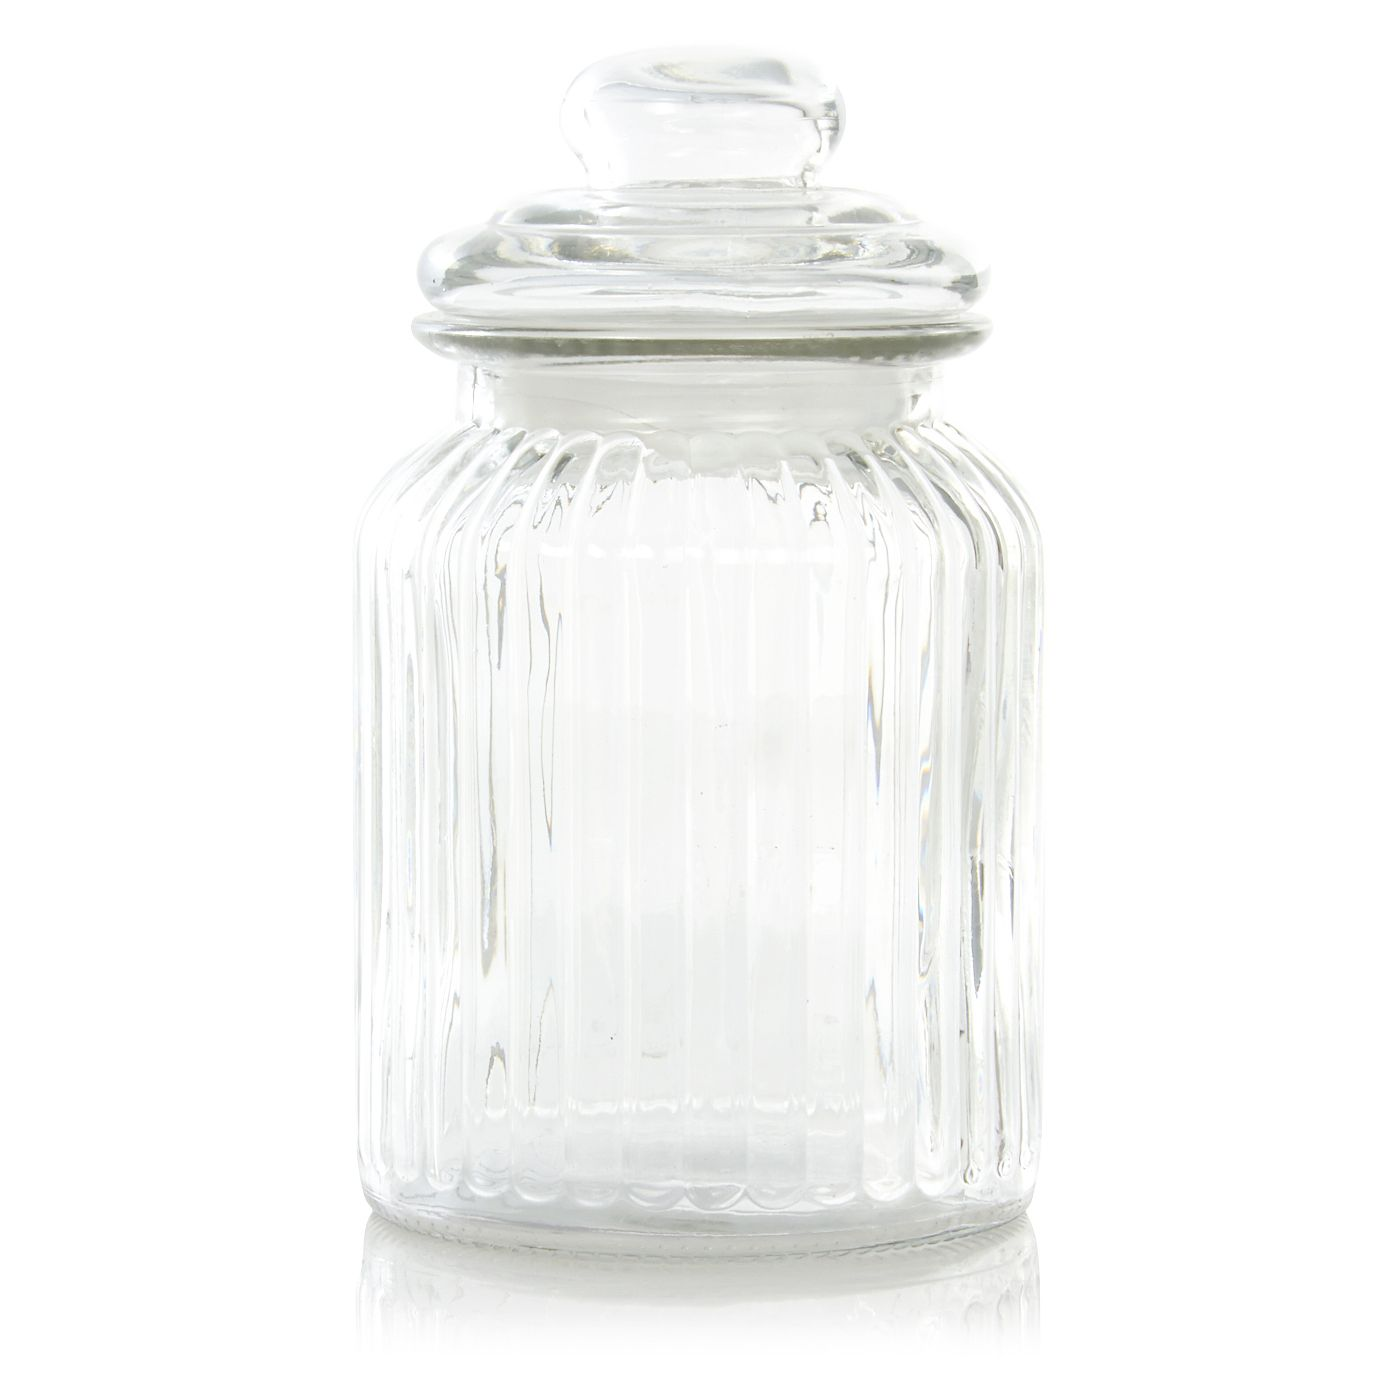 George Home Large 980ml Ribbed Glass Jar Kitchen Storage Asda